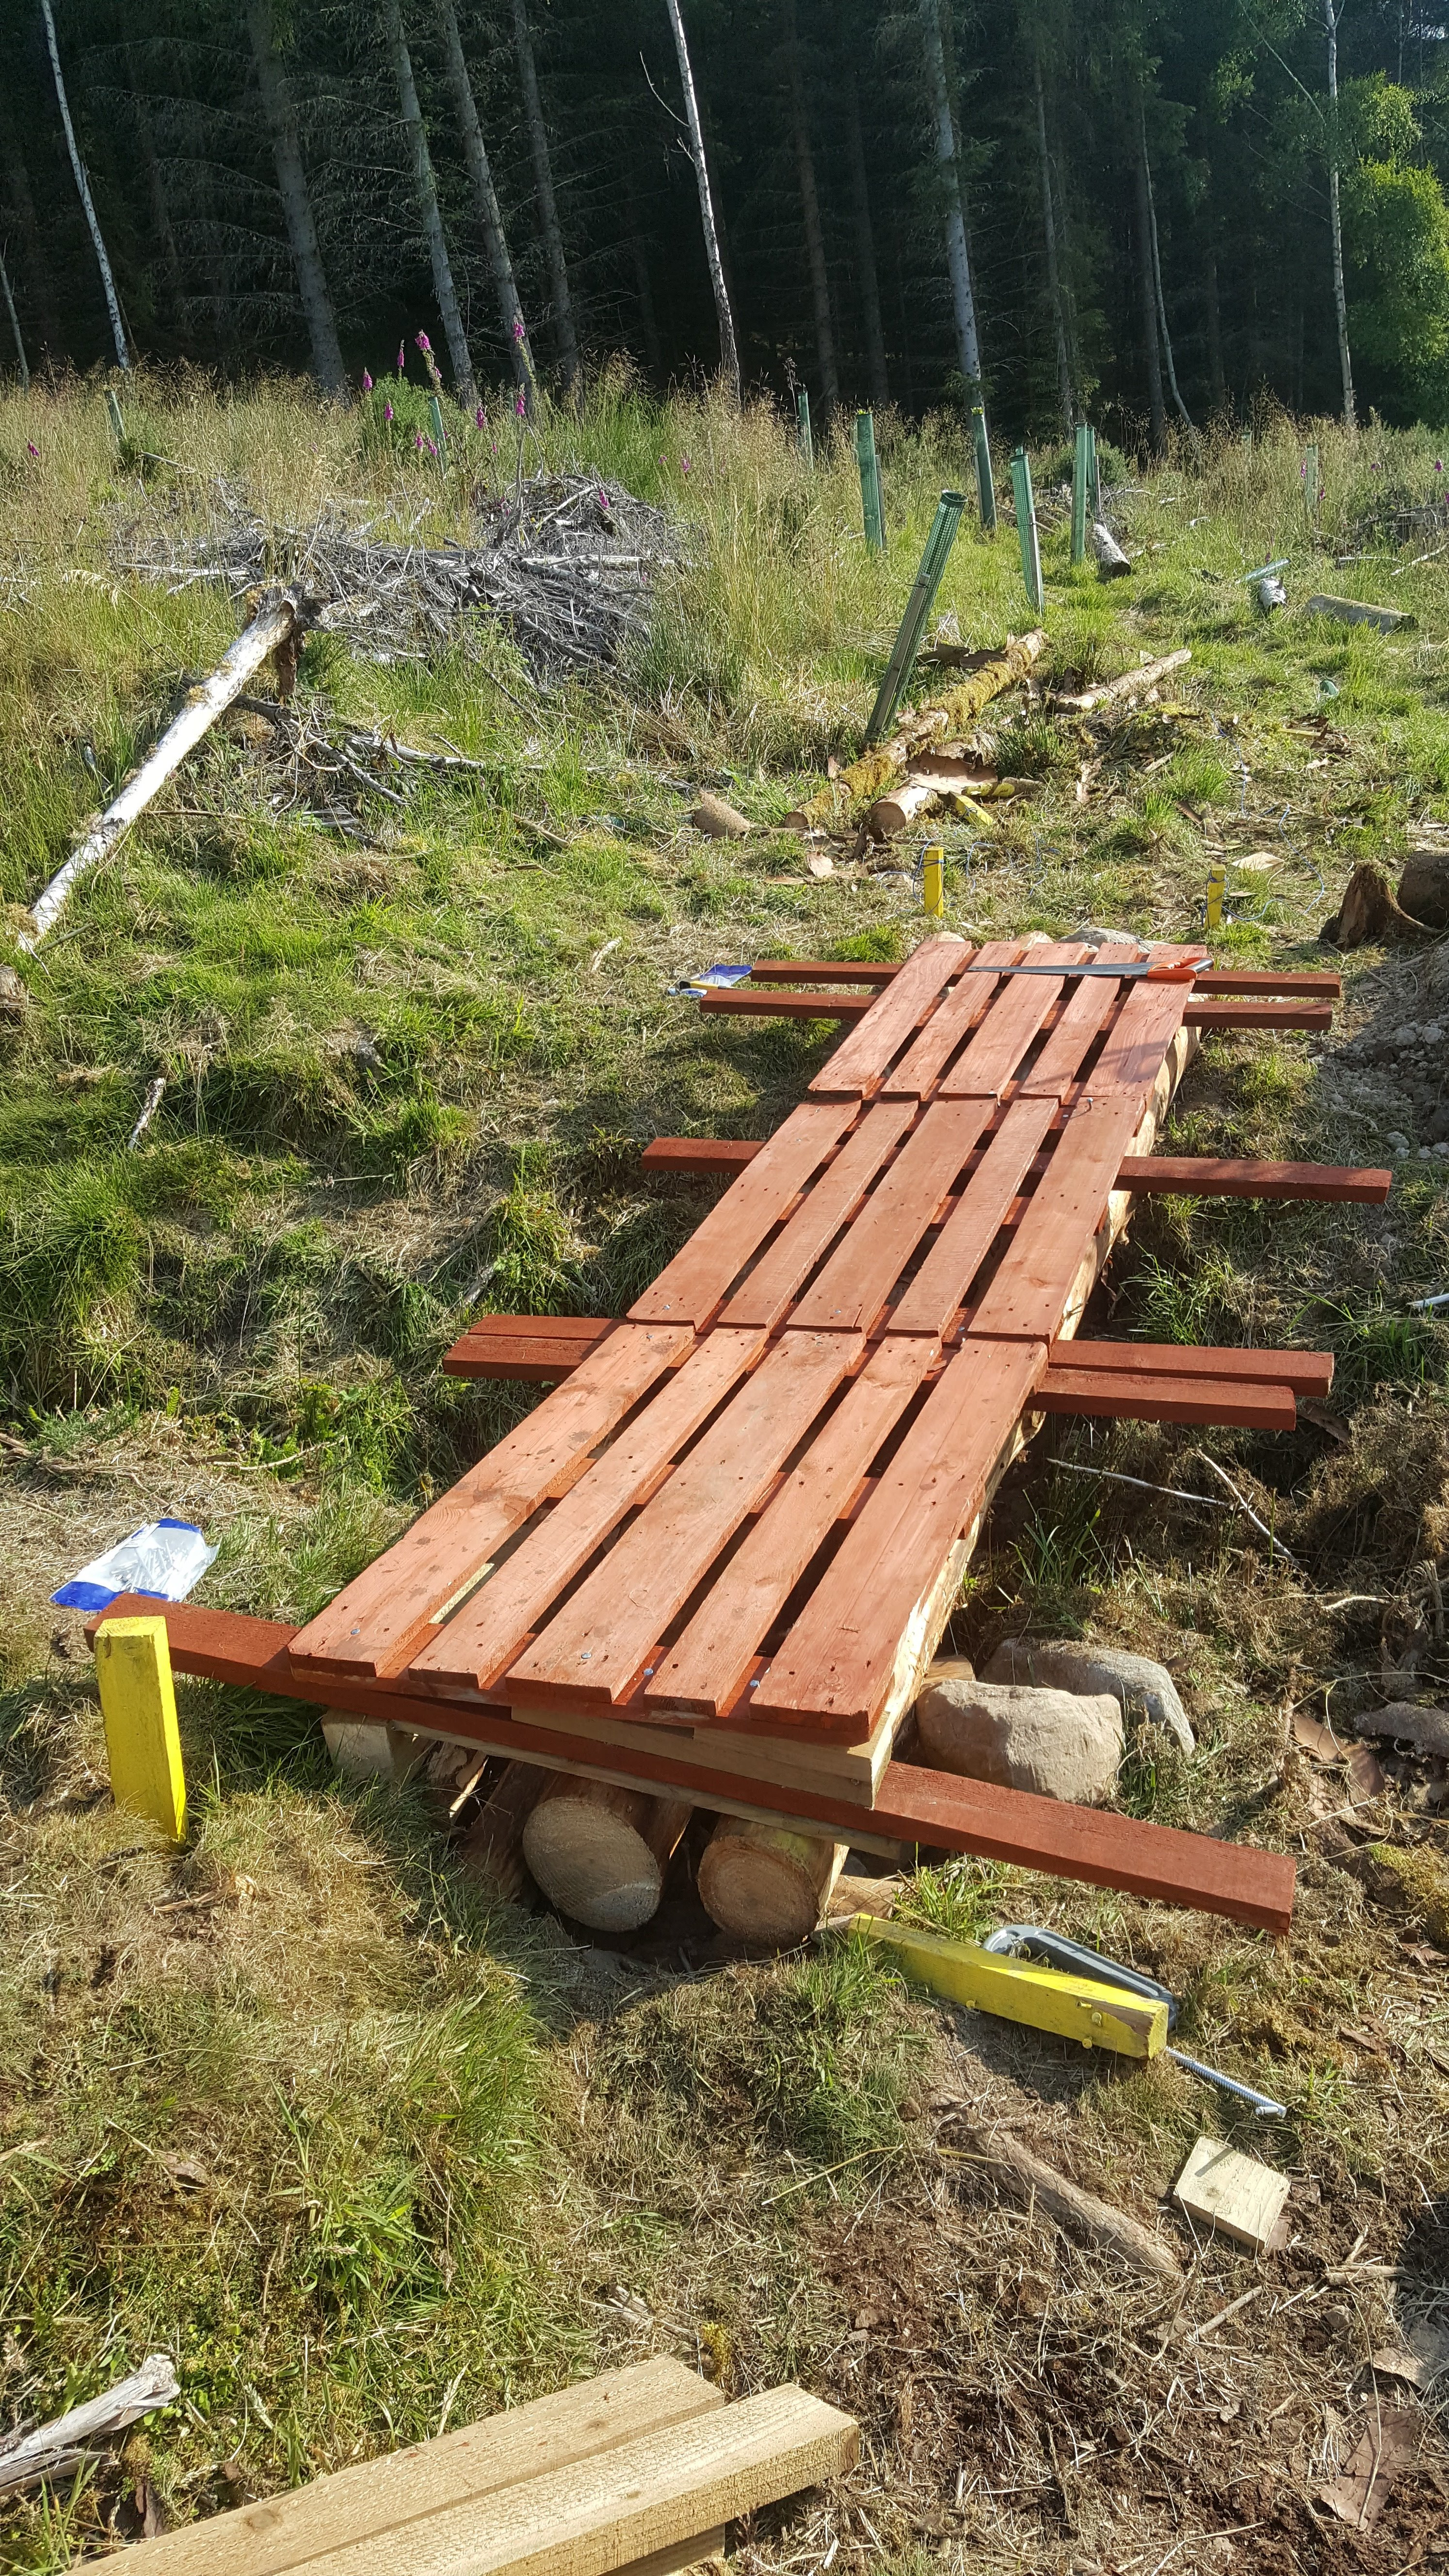 Picture of Laying the Wooden Pallet Tops and Sponsons